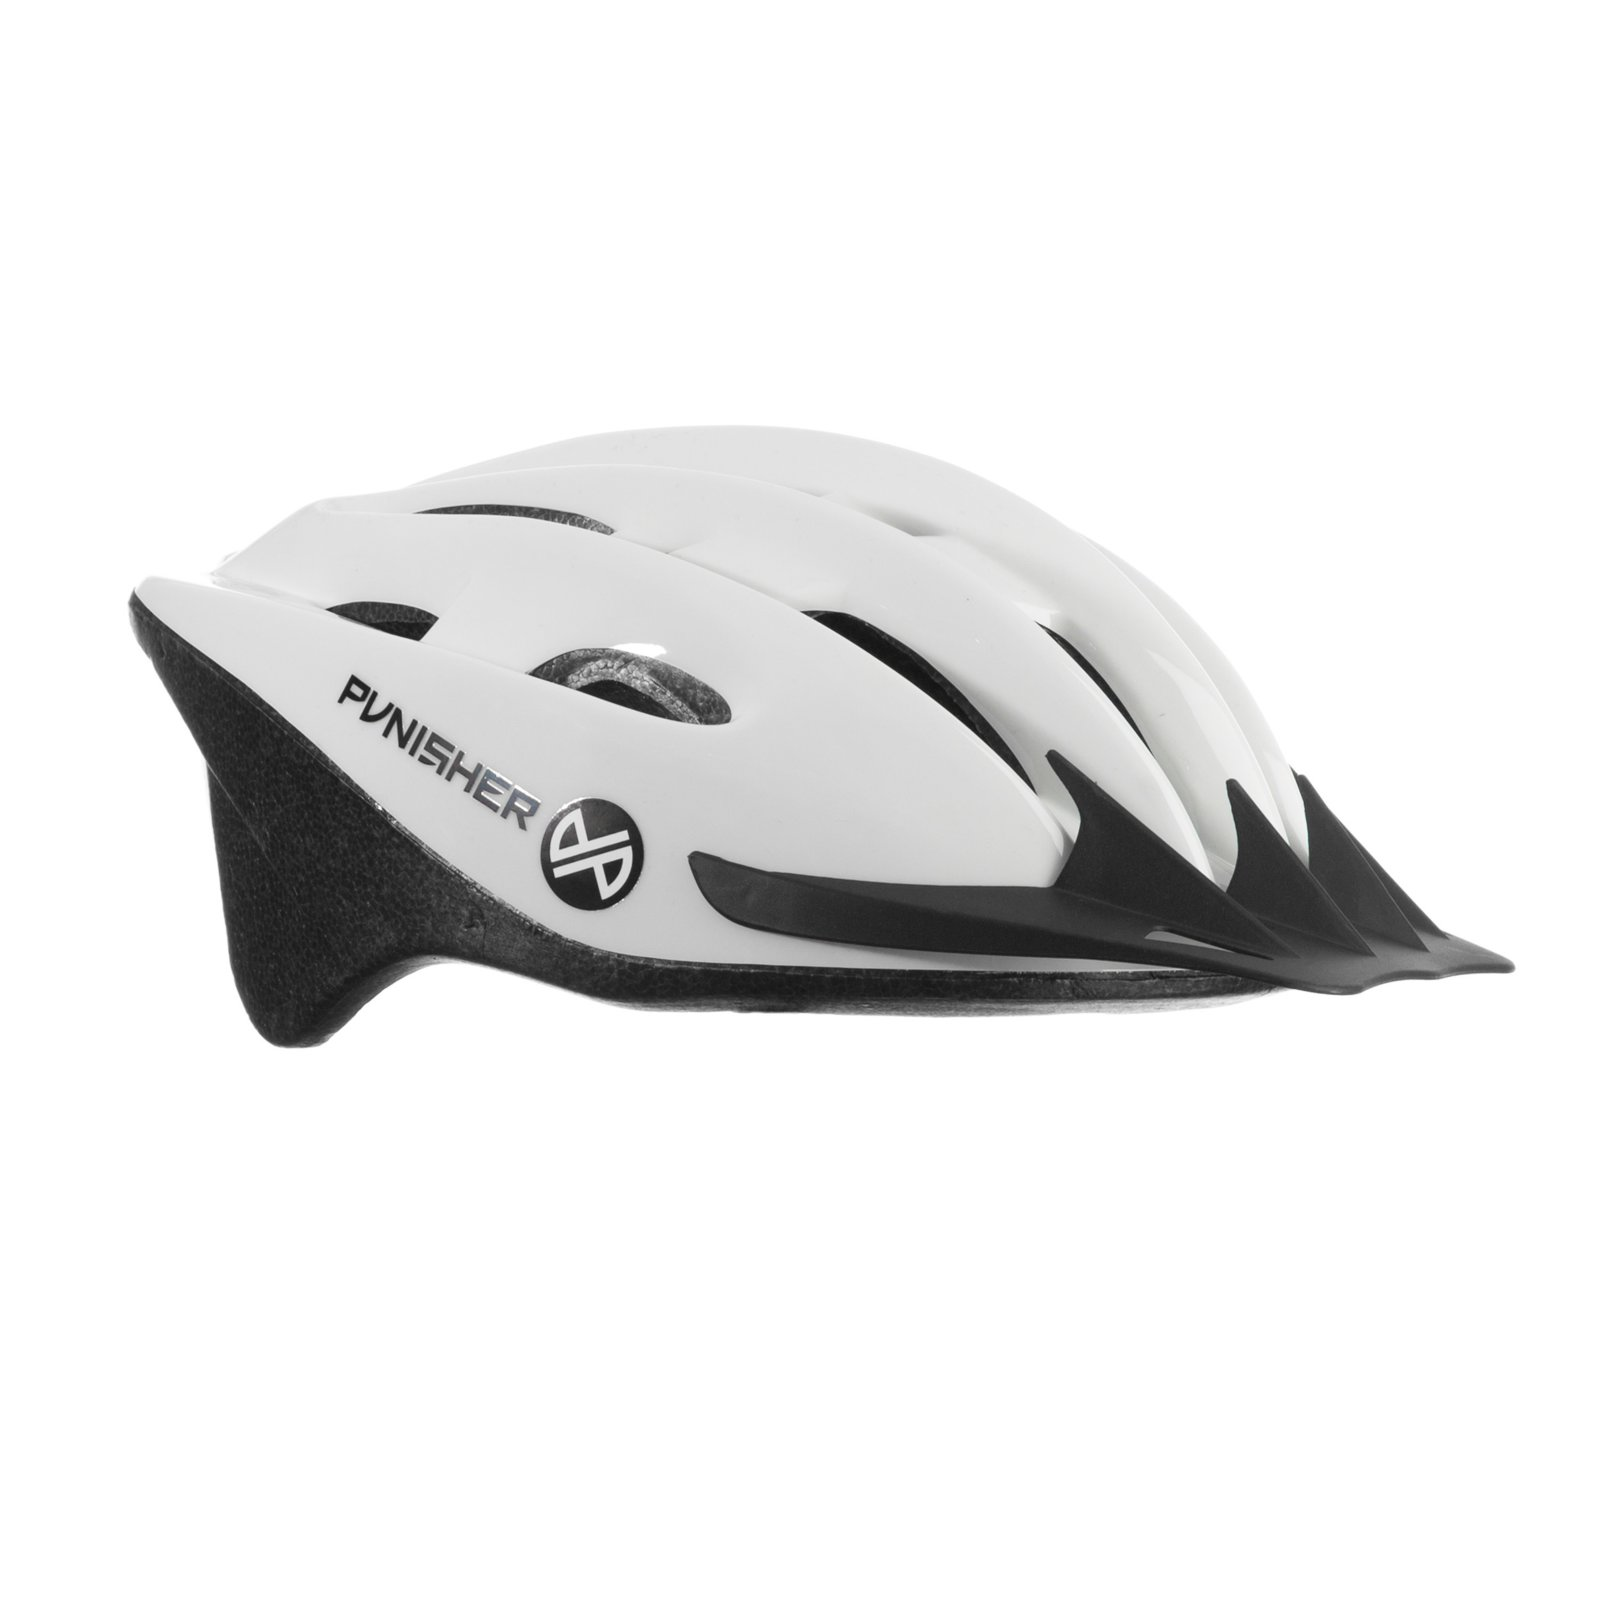 Punisher 18-Vent Adult Cycling Helmet with Imitation In-Mold, White, Ages 12+ by Punisher Skateboards